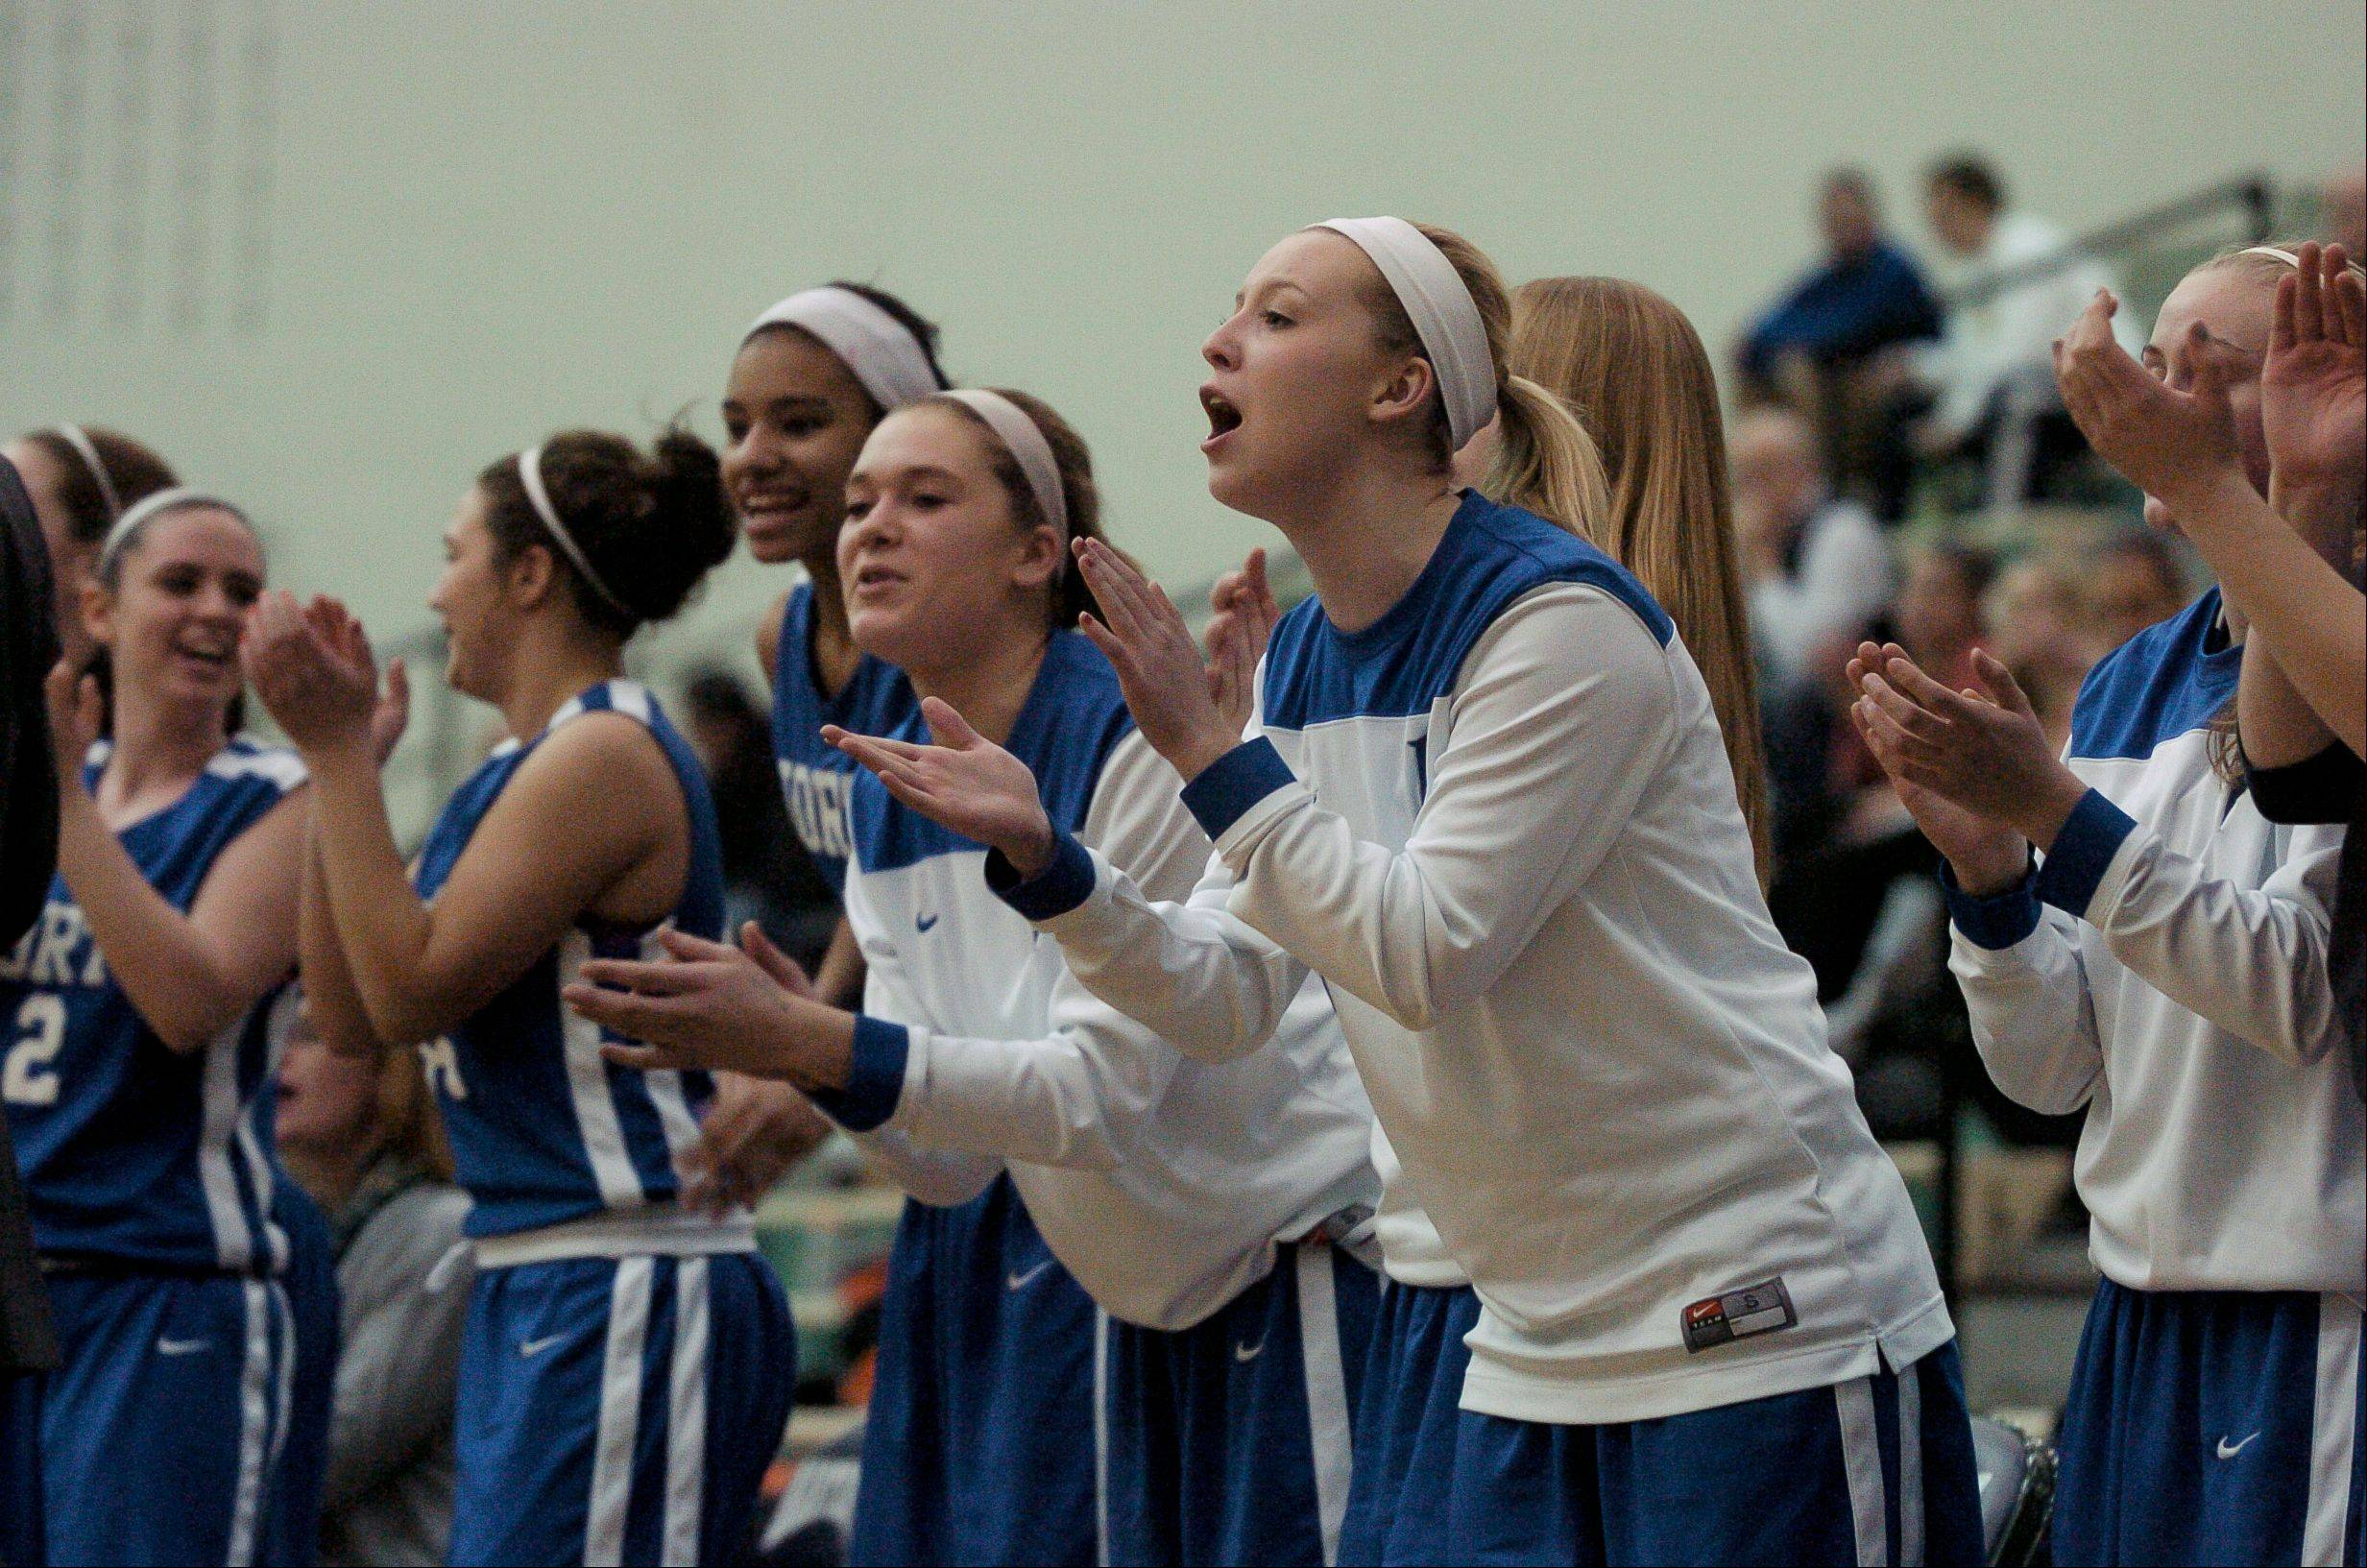 Wheaton North played Wheaton Warrenville South Thursday night in the Class 4A girls basketball sectional final at Bartlett High School.